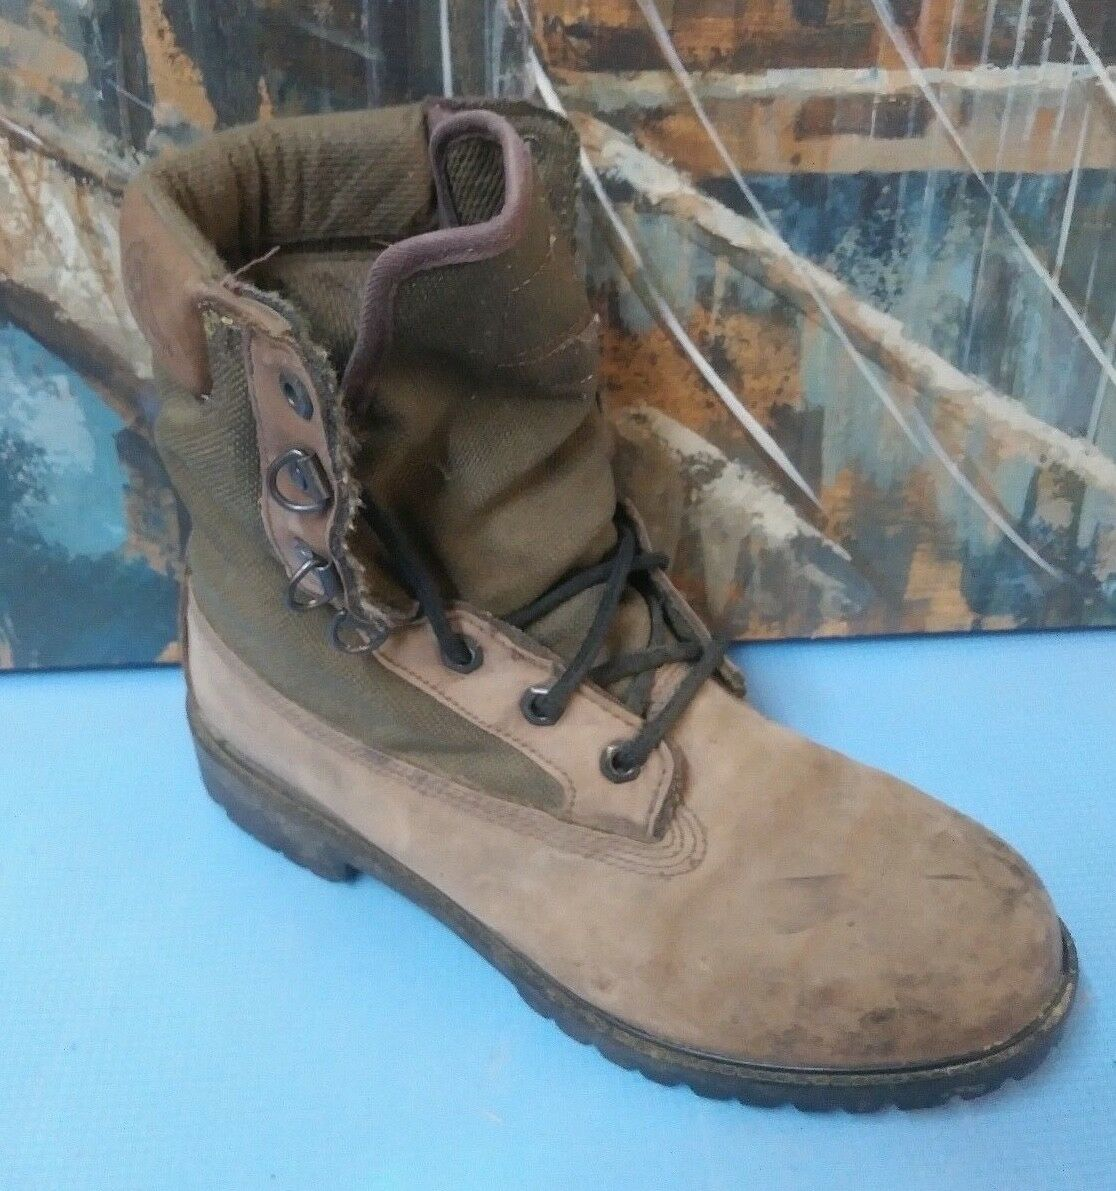 Rocky Size 8.5 M Brown Leather Hunting Hiking Oil Slip Resist Boots RB825